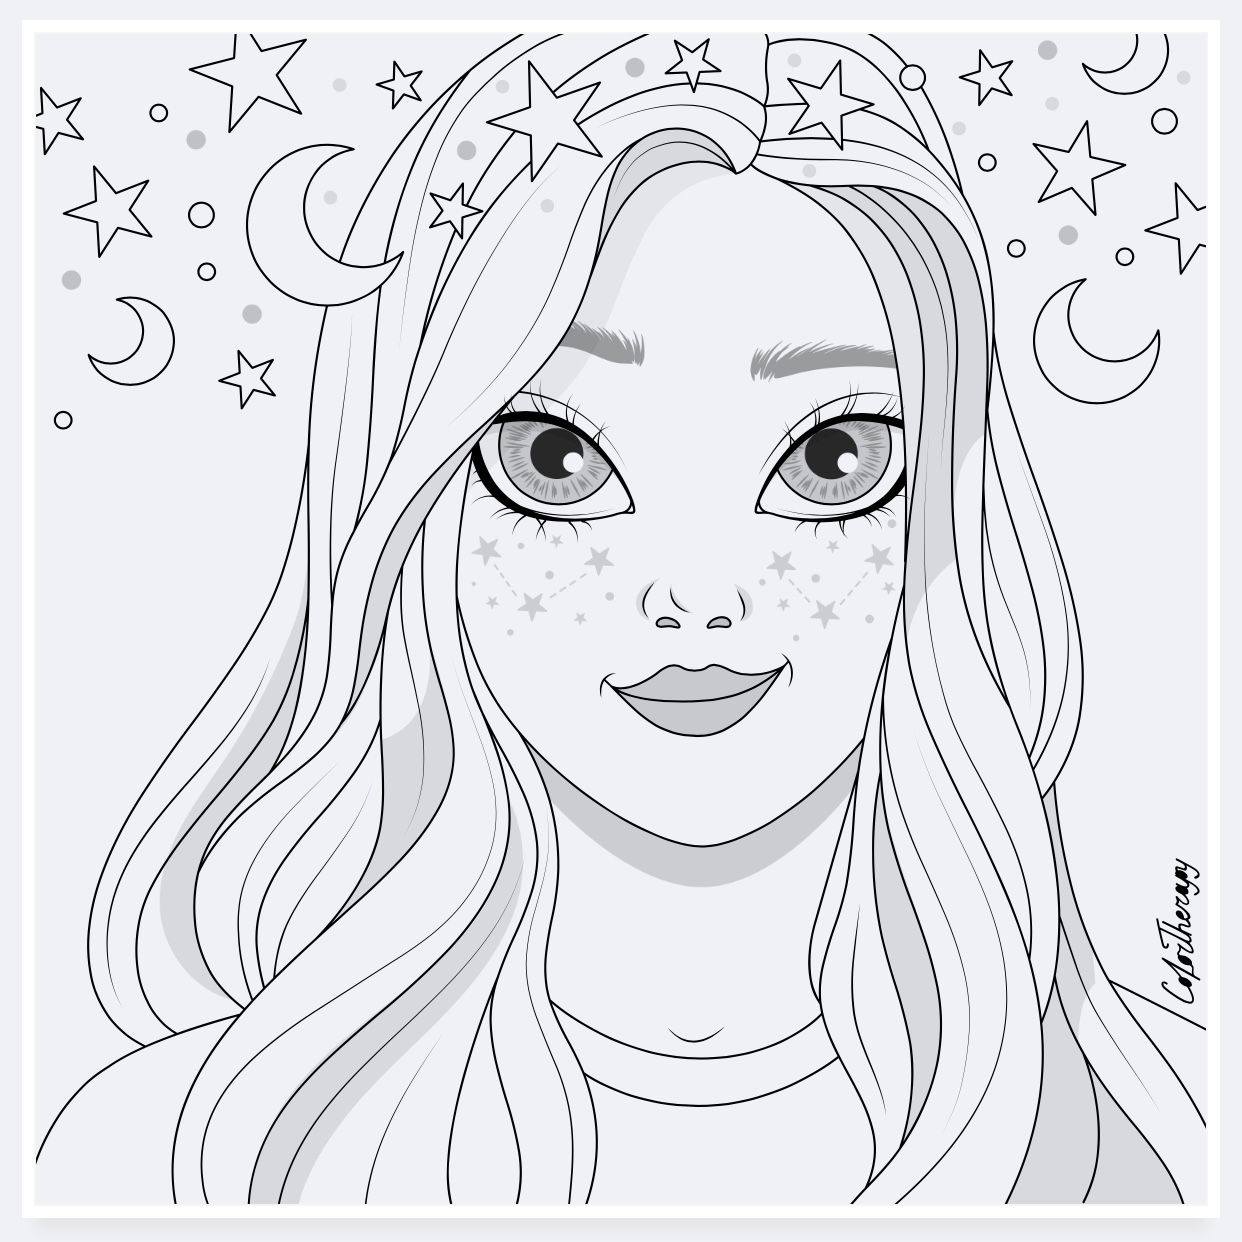 Colortherapy Barbie Coloring Pages People Coloring Pages Kids Printable Coloring Pages